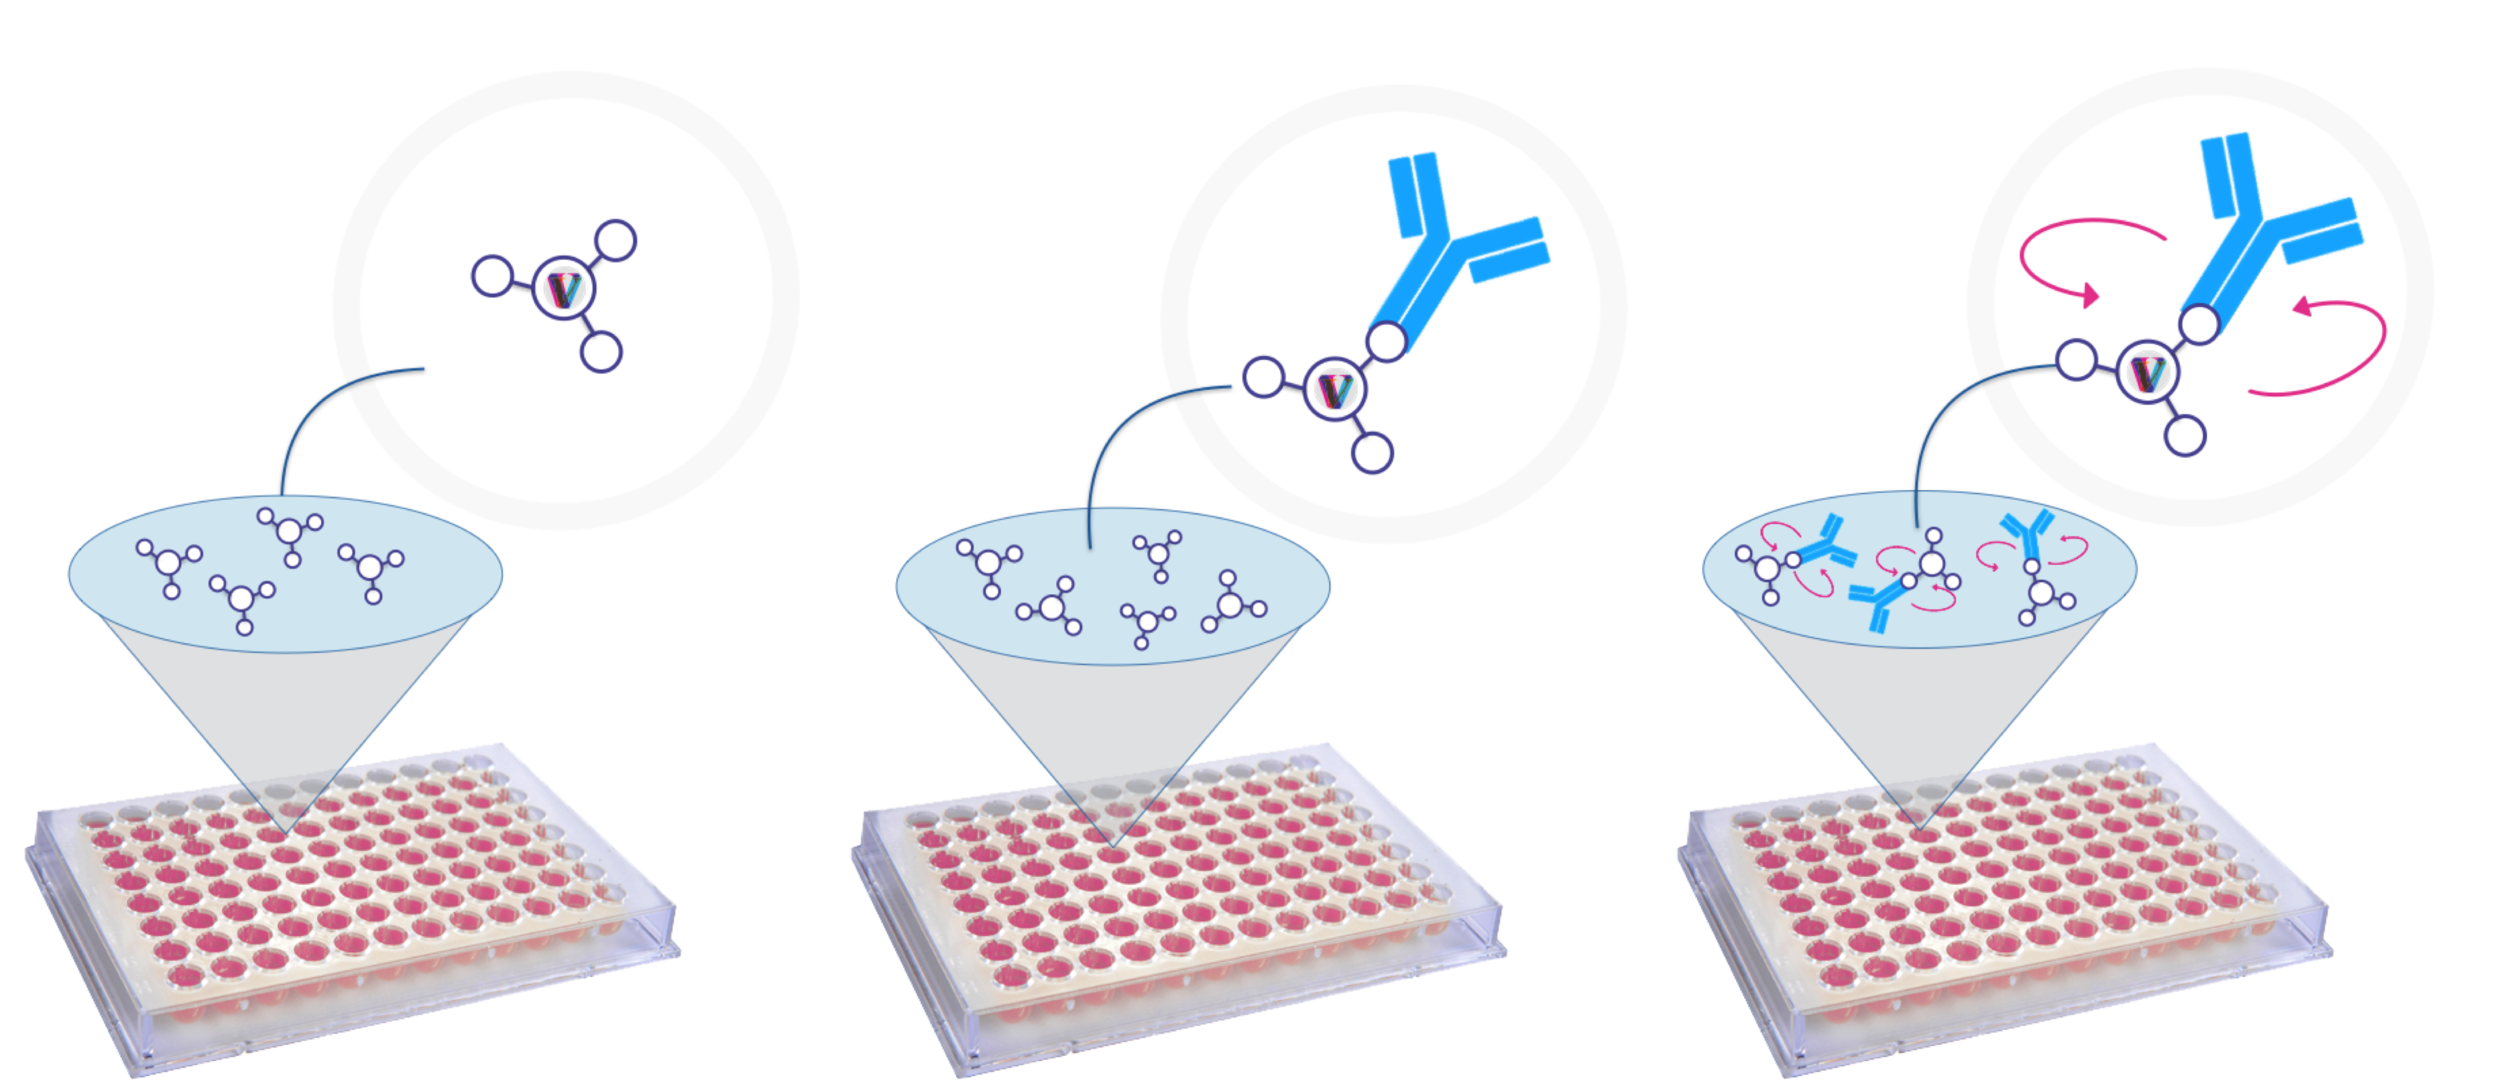 1) The Fluoresence Polarisation plate is coated with a fluorescently labelled IgG-binding peptide. 2) When the IgG sample is added, it binds to the fluorescently labelled peptide 3) Binding is detected using fluoresence polarisation